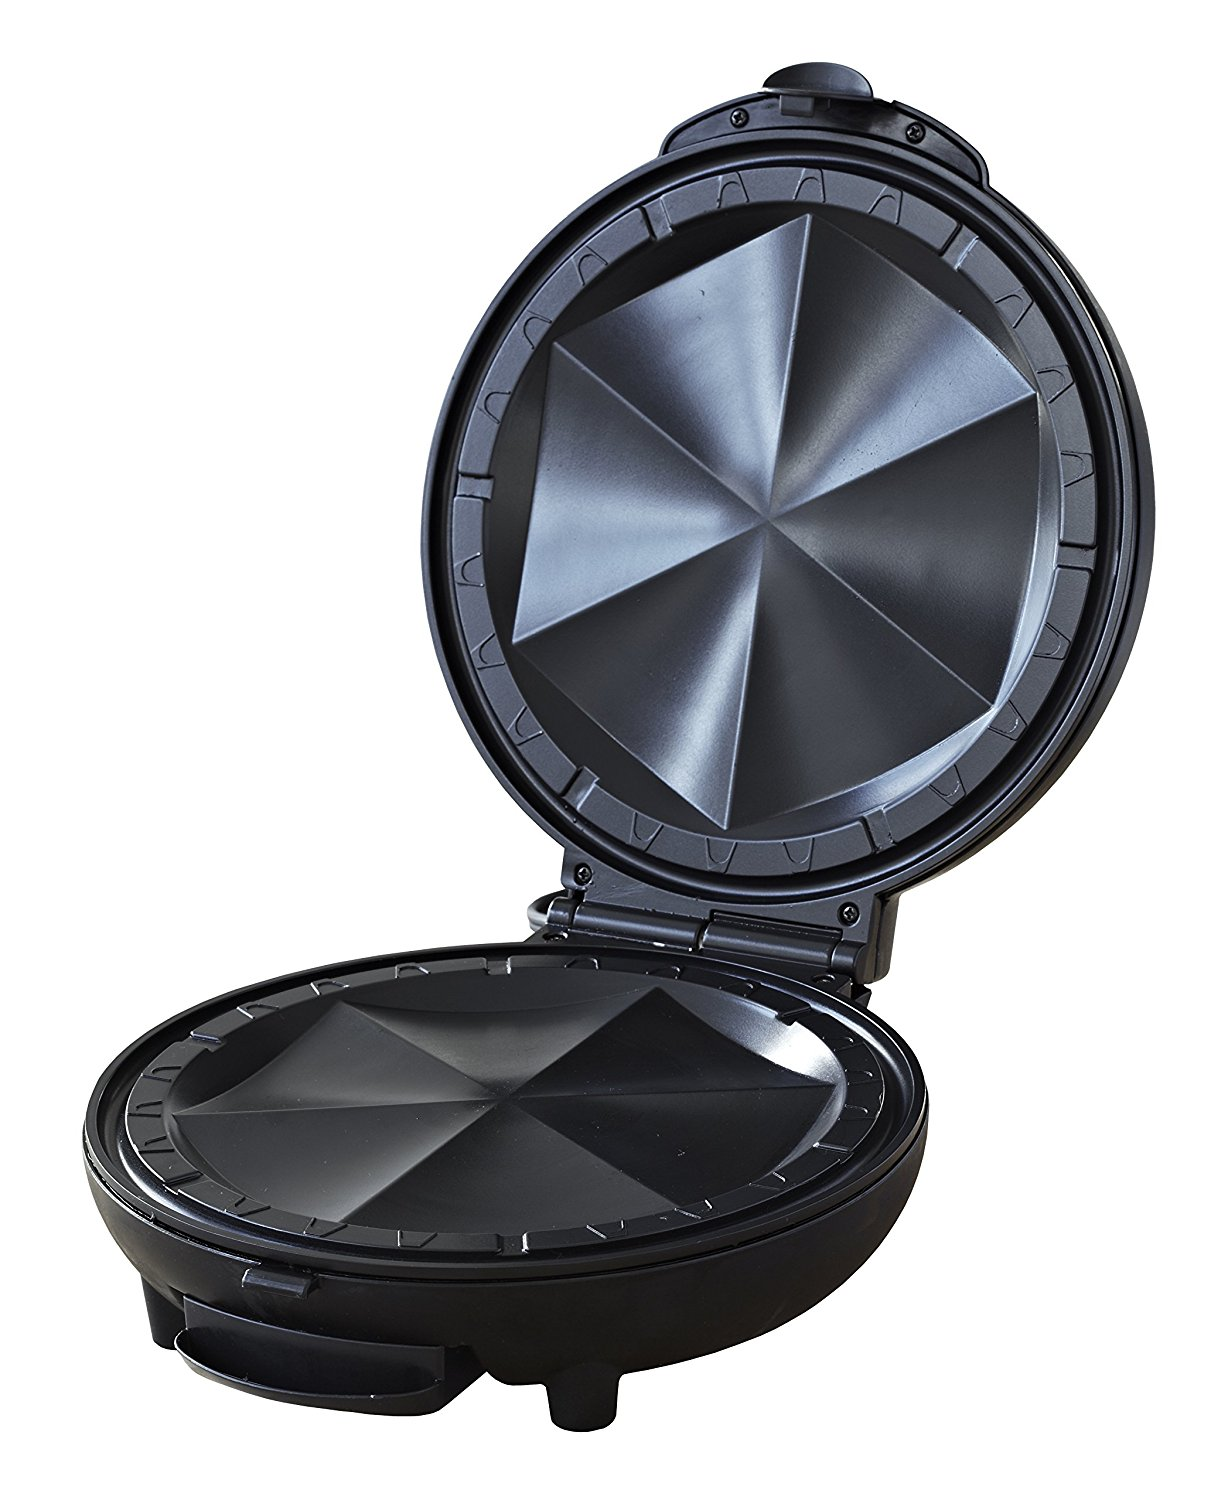 Imusa 900-Watt Quesadilla Maker -  Fits 8-Inch Tortillas, Non-Stick Cooking Surface, Ready Light